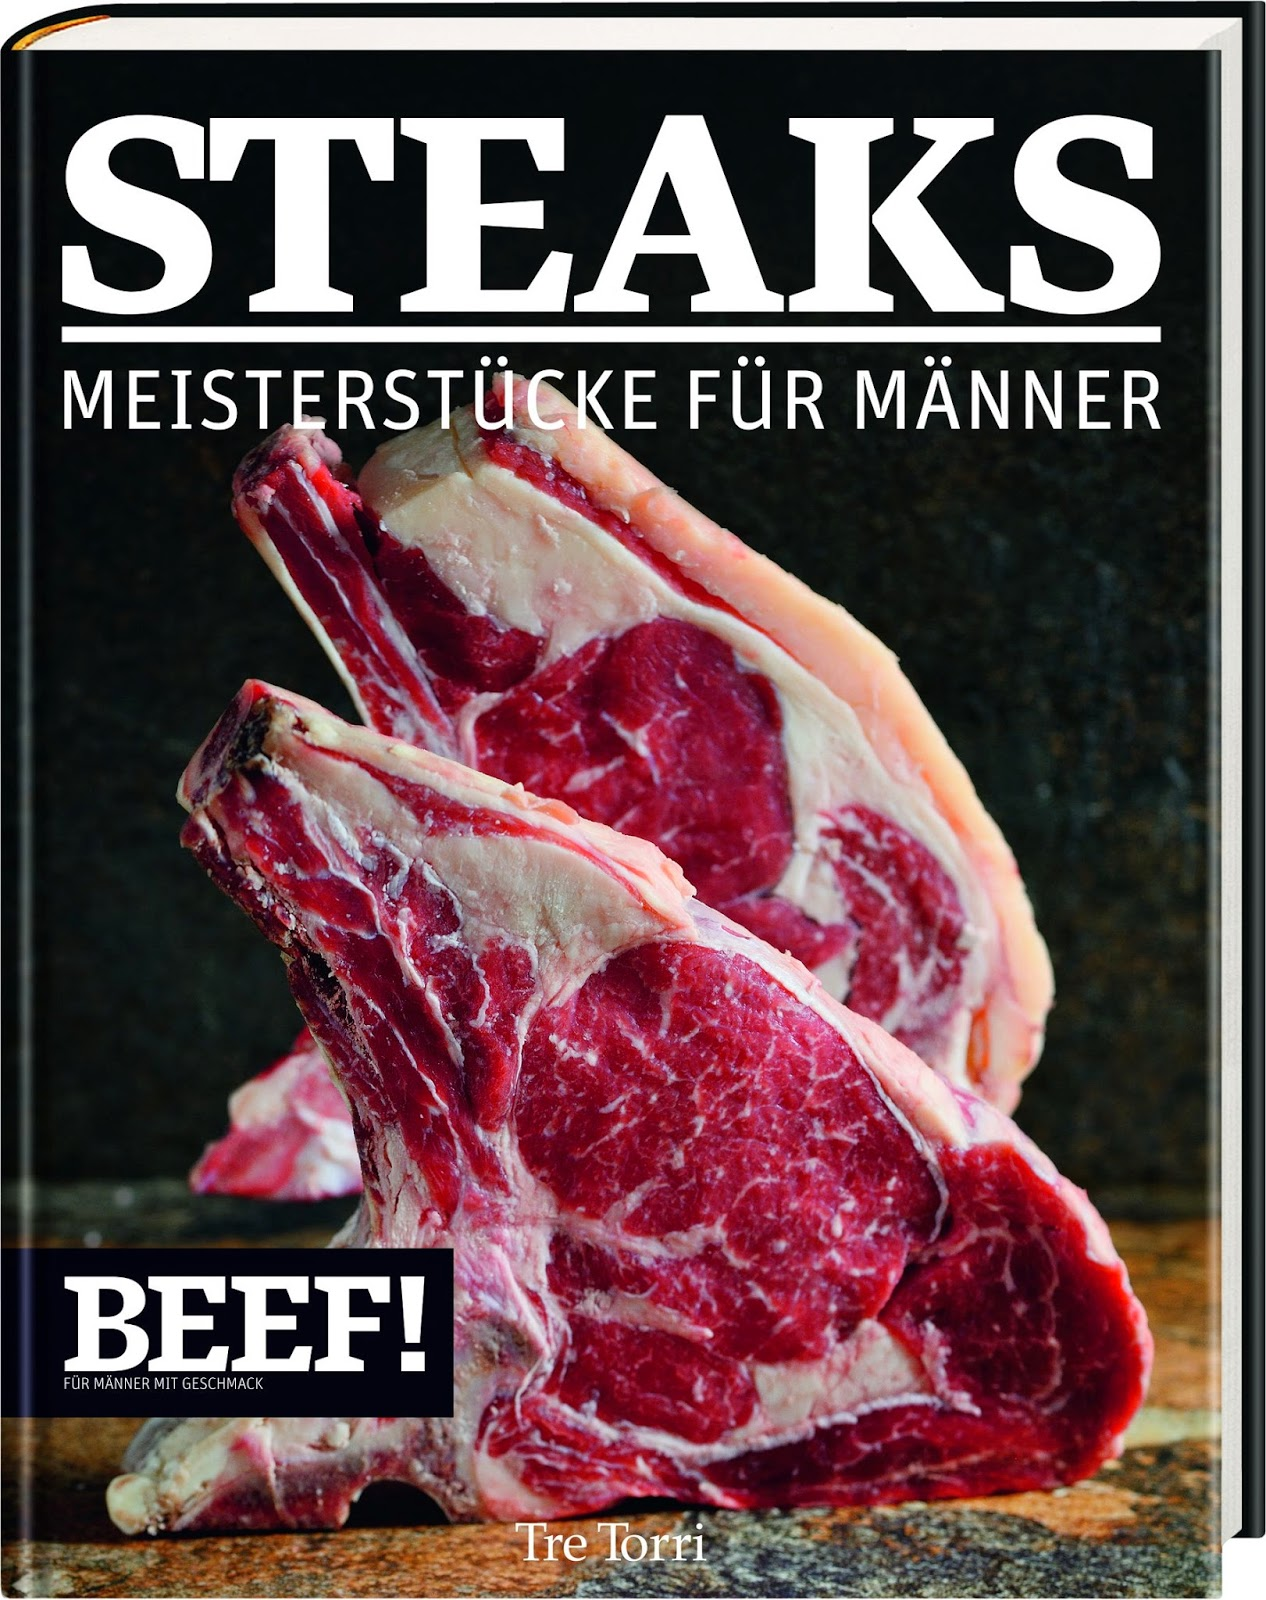 https://www.buchhaus-sternverlag.de/shop/action/productDetails/25263486/steaks_meisterstuecke_fuer_maenner_3944628489.html?aUrl=90007403&searchId=91